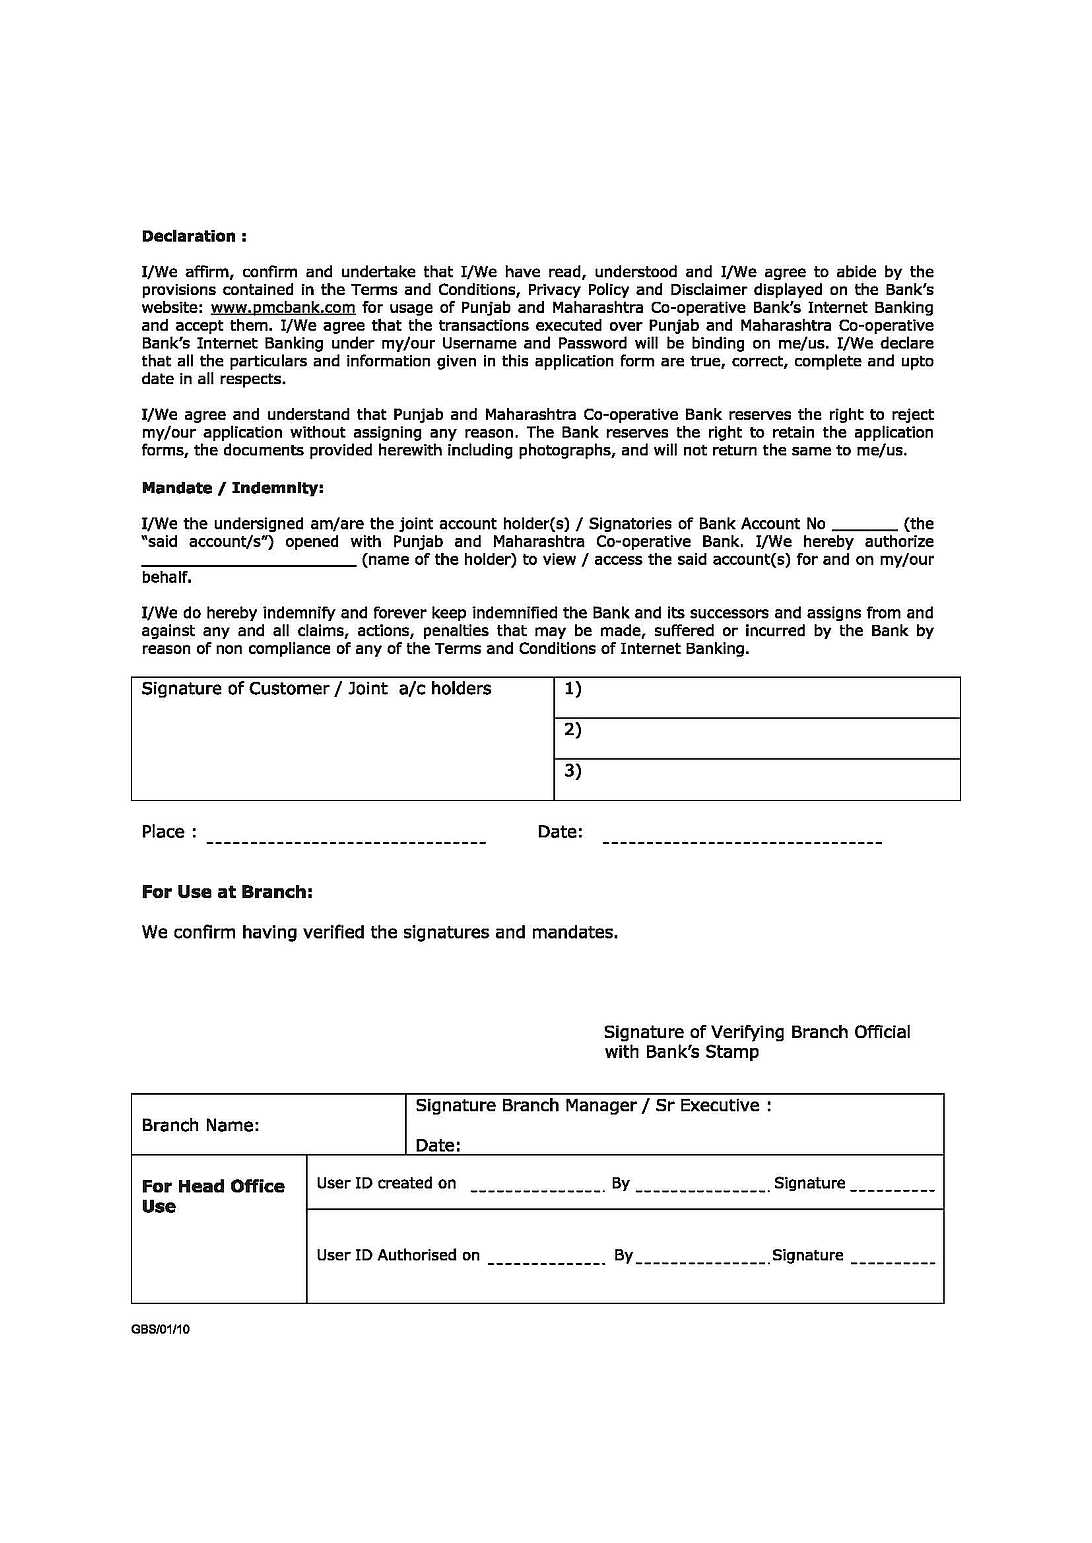 how to fill corporation bank internet banking form